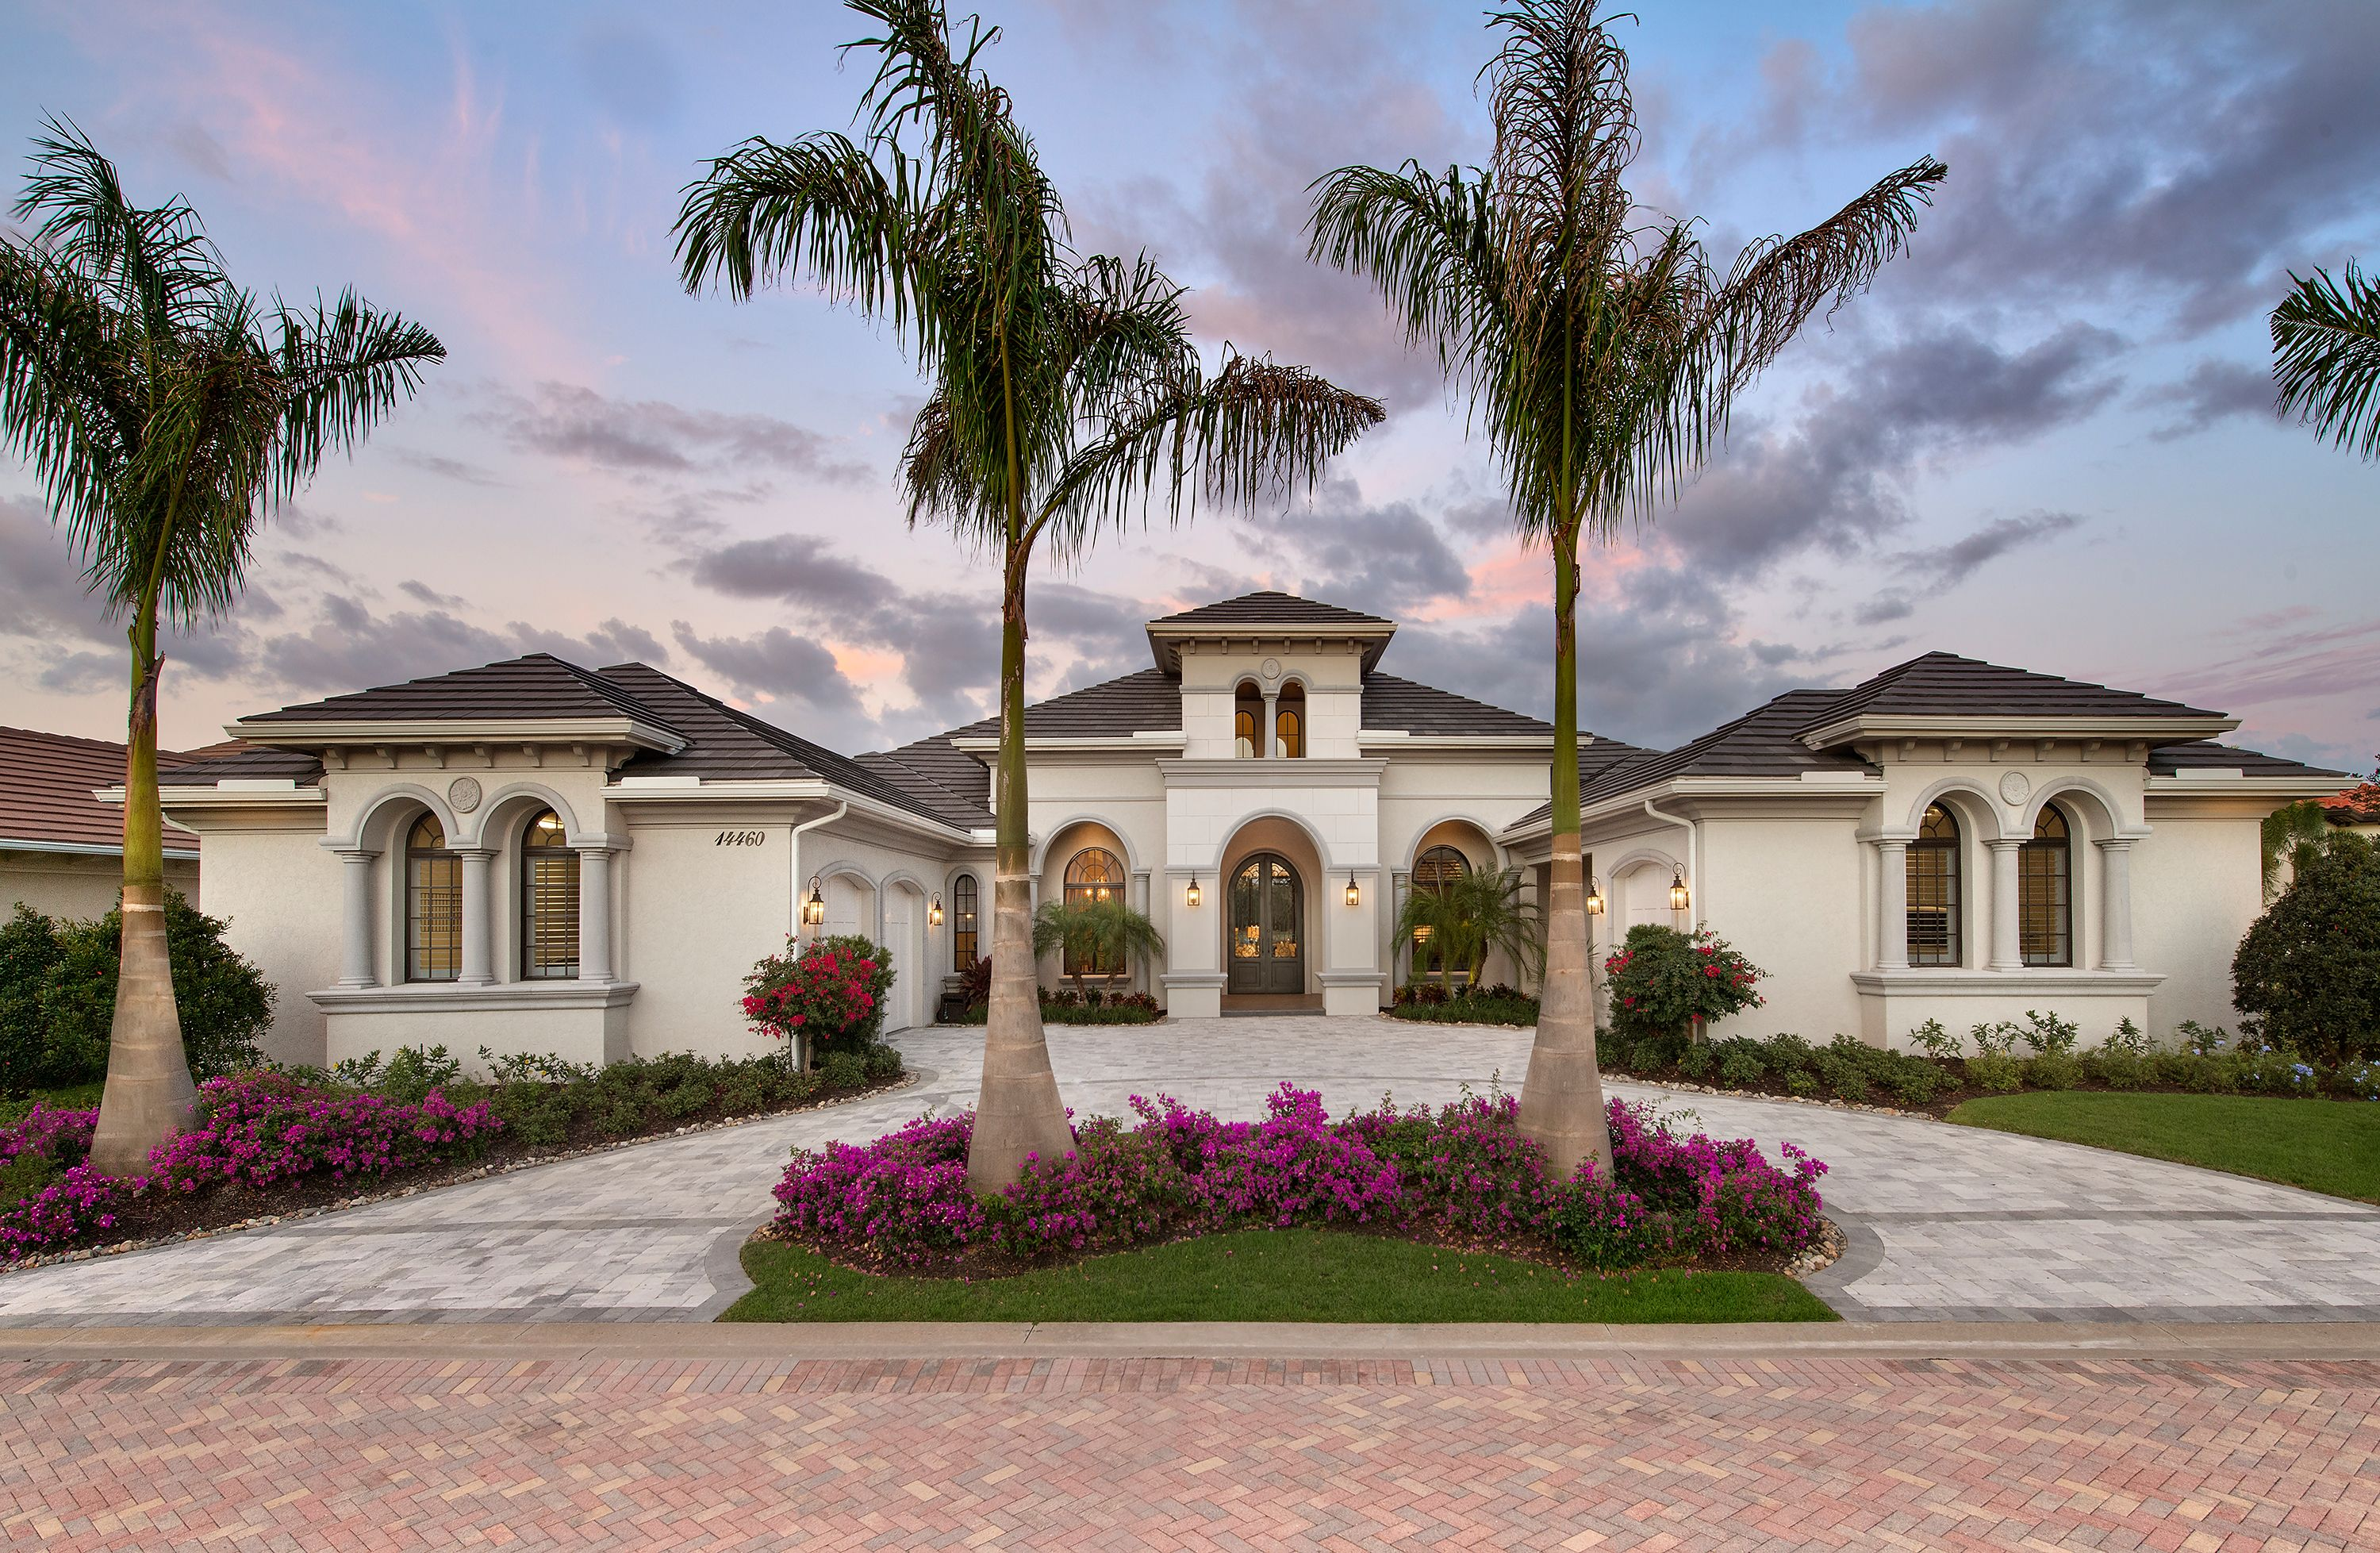 Mediterranean Lakefront Home Design 1 Story Contemporary With Pool Mediterranean Style House Plans Mediterranean House Plans Mediterranean Style Homes